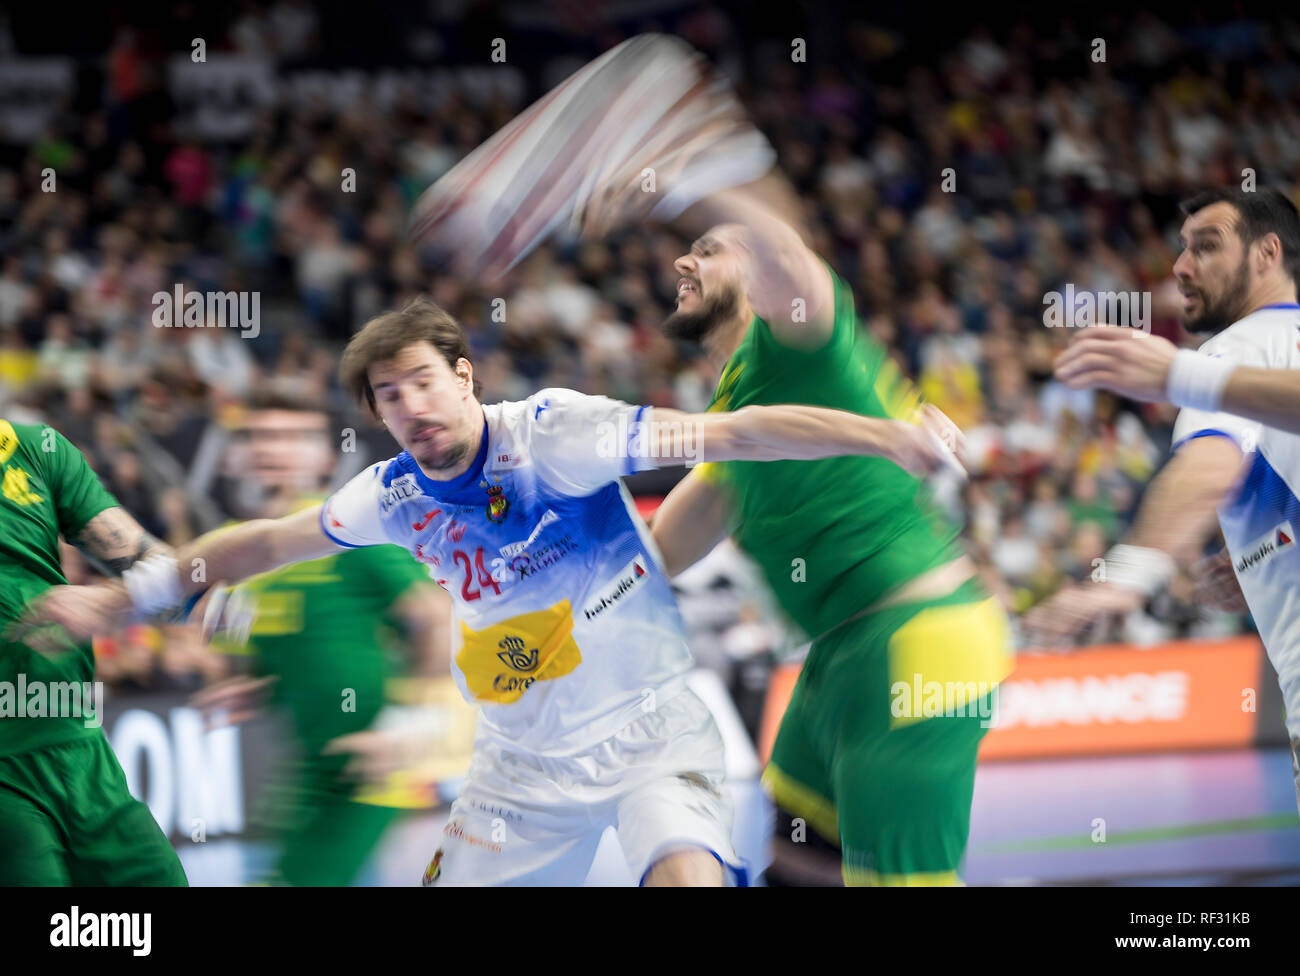 RODRIGUES Gustavo (BRA) versus Viran MORROS l. (ESP), litter, blurred, dynamic, action, main round Group I, Spain (ESP) - Brazil (BRA) 36:24, on 21.01.2019 in Koeln / Germany. Handball World Cup 2019, from 10.01. - 27.01.2019 in Germany / Denmark. | usage worldwide Stock Photo